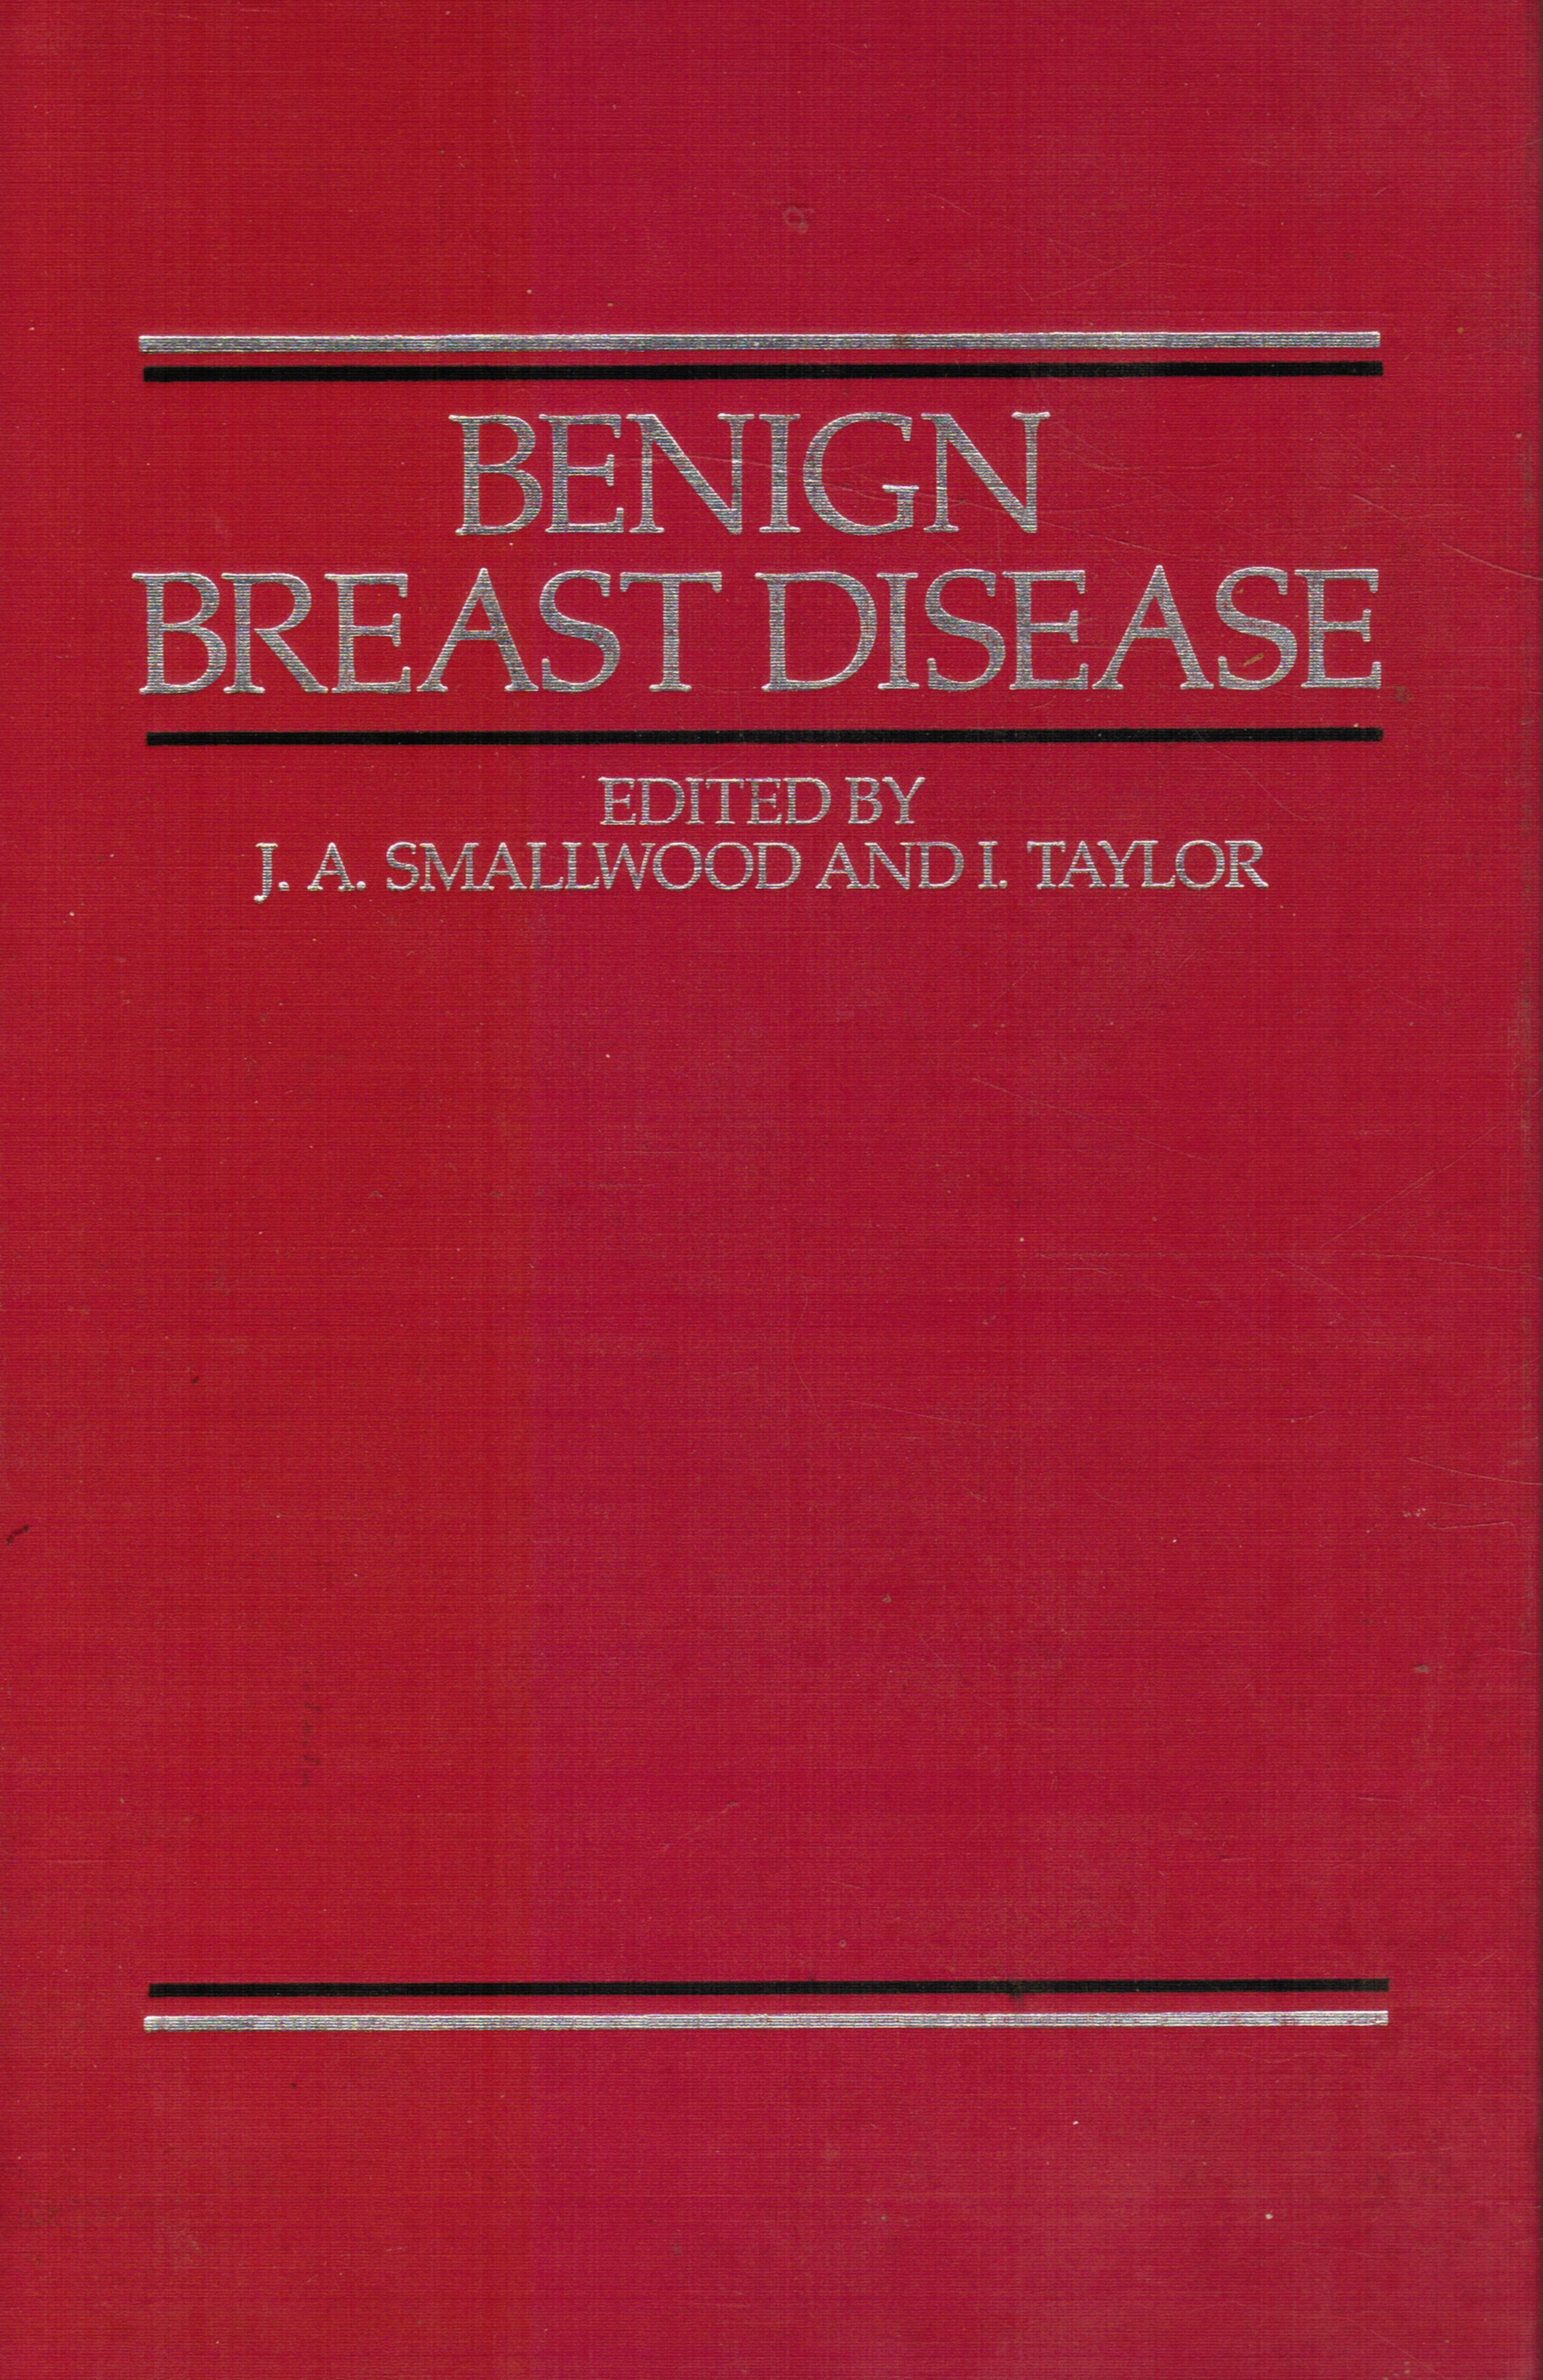 Image for Benign Breast Disease